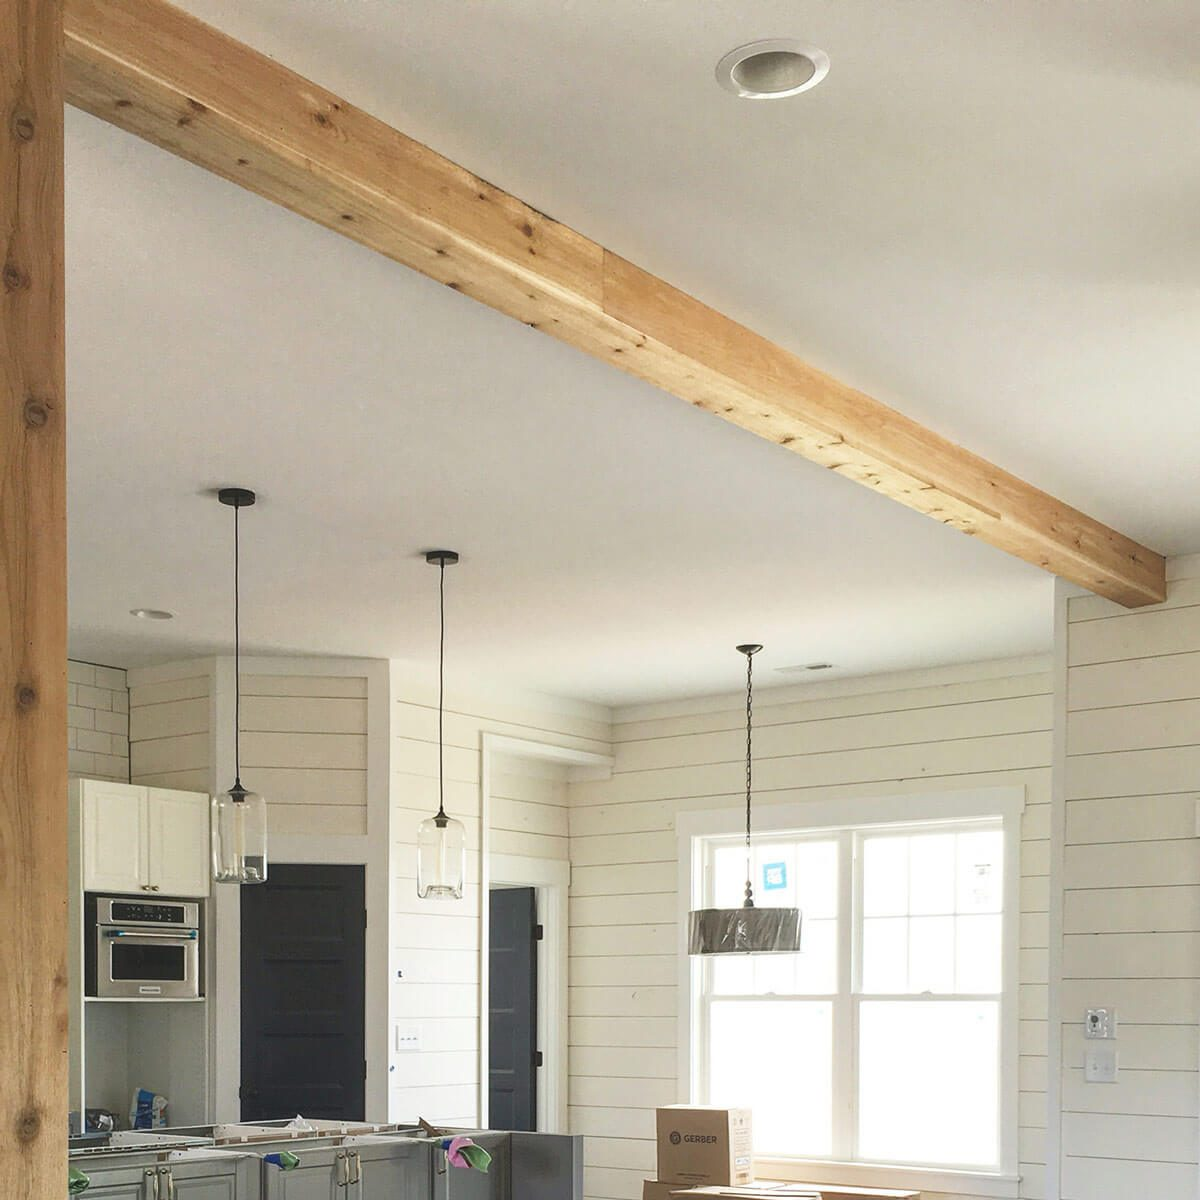 Rustic Walls Interior 12 Incredible Shiplap Wall Ideas The Family Handyman